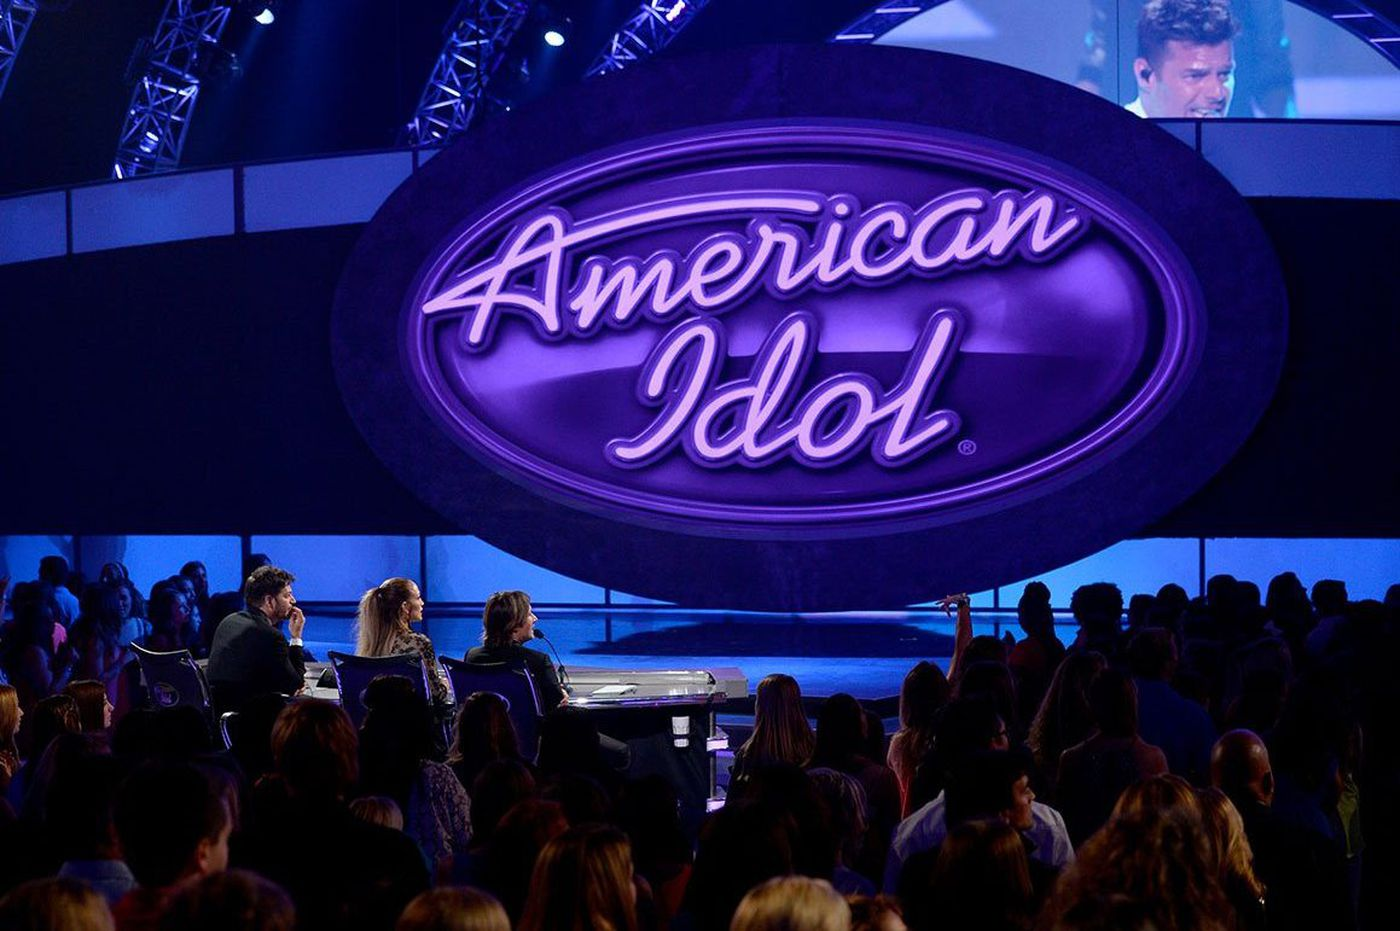 'American Idol' auditions set for Sept. 6 in Philly